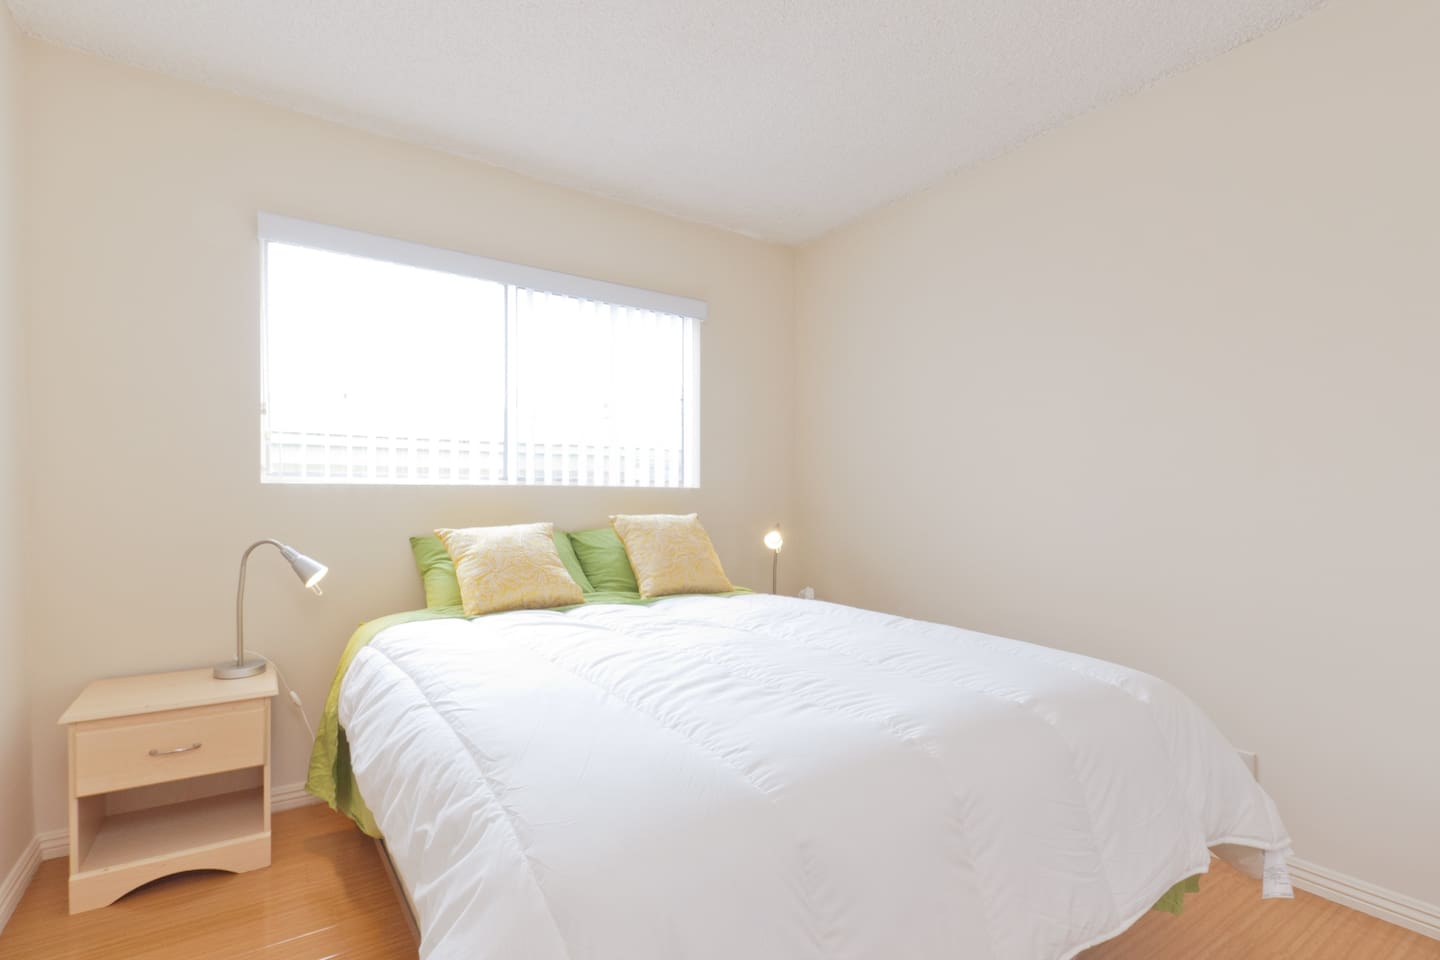 Wonderful, sunny room with plush queen-size bed with high quality mattress for optimal back support.